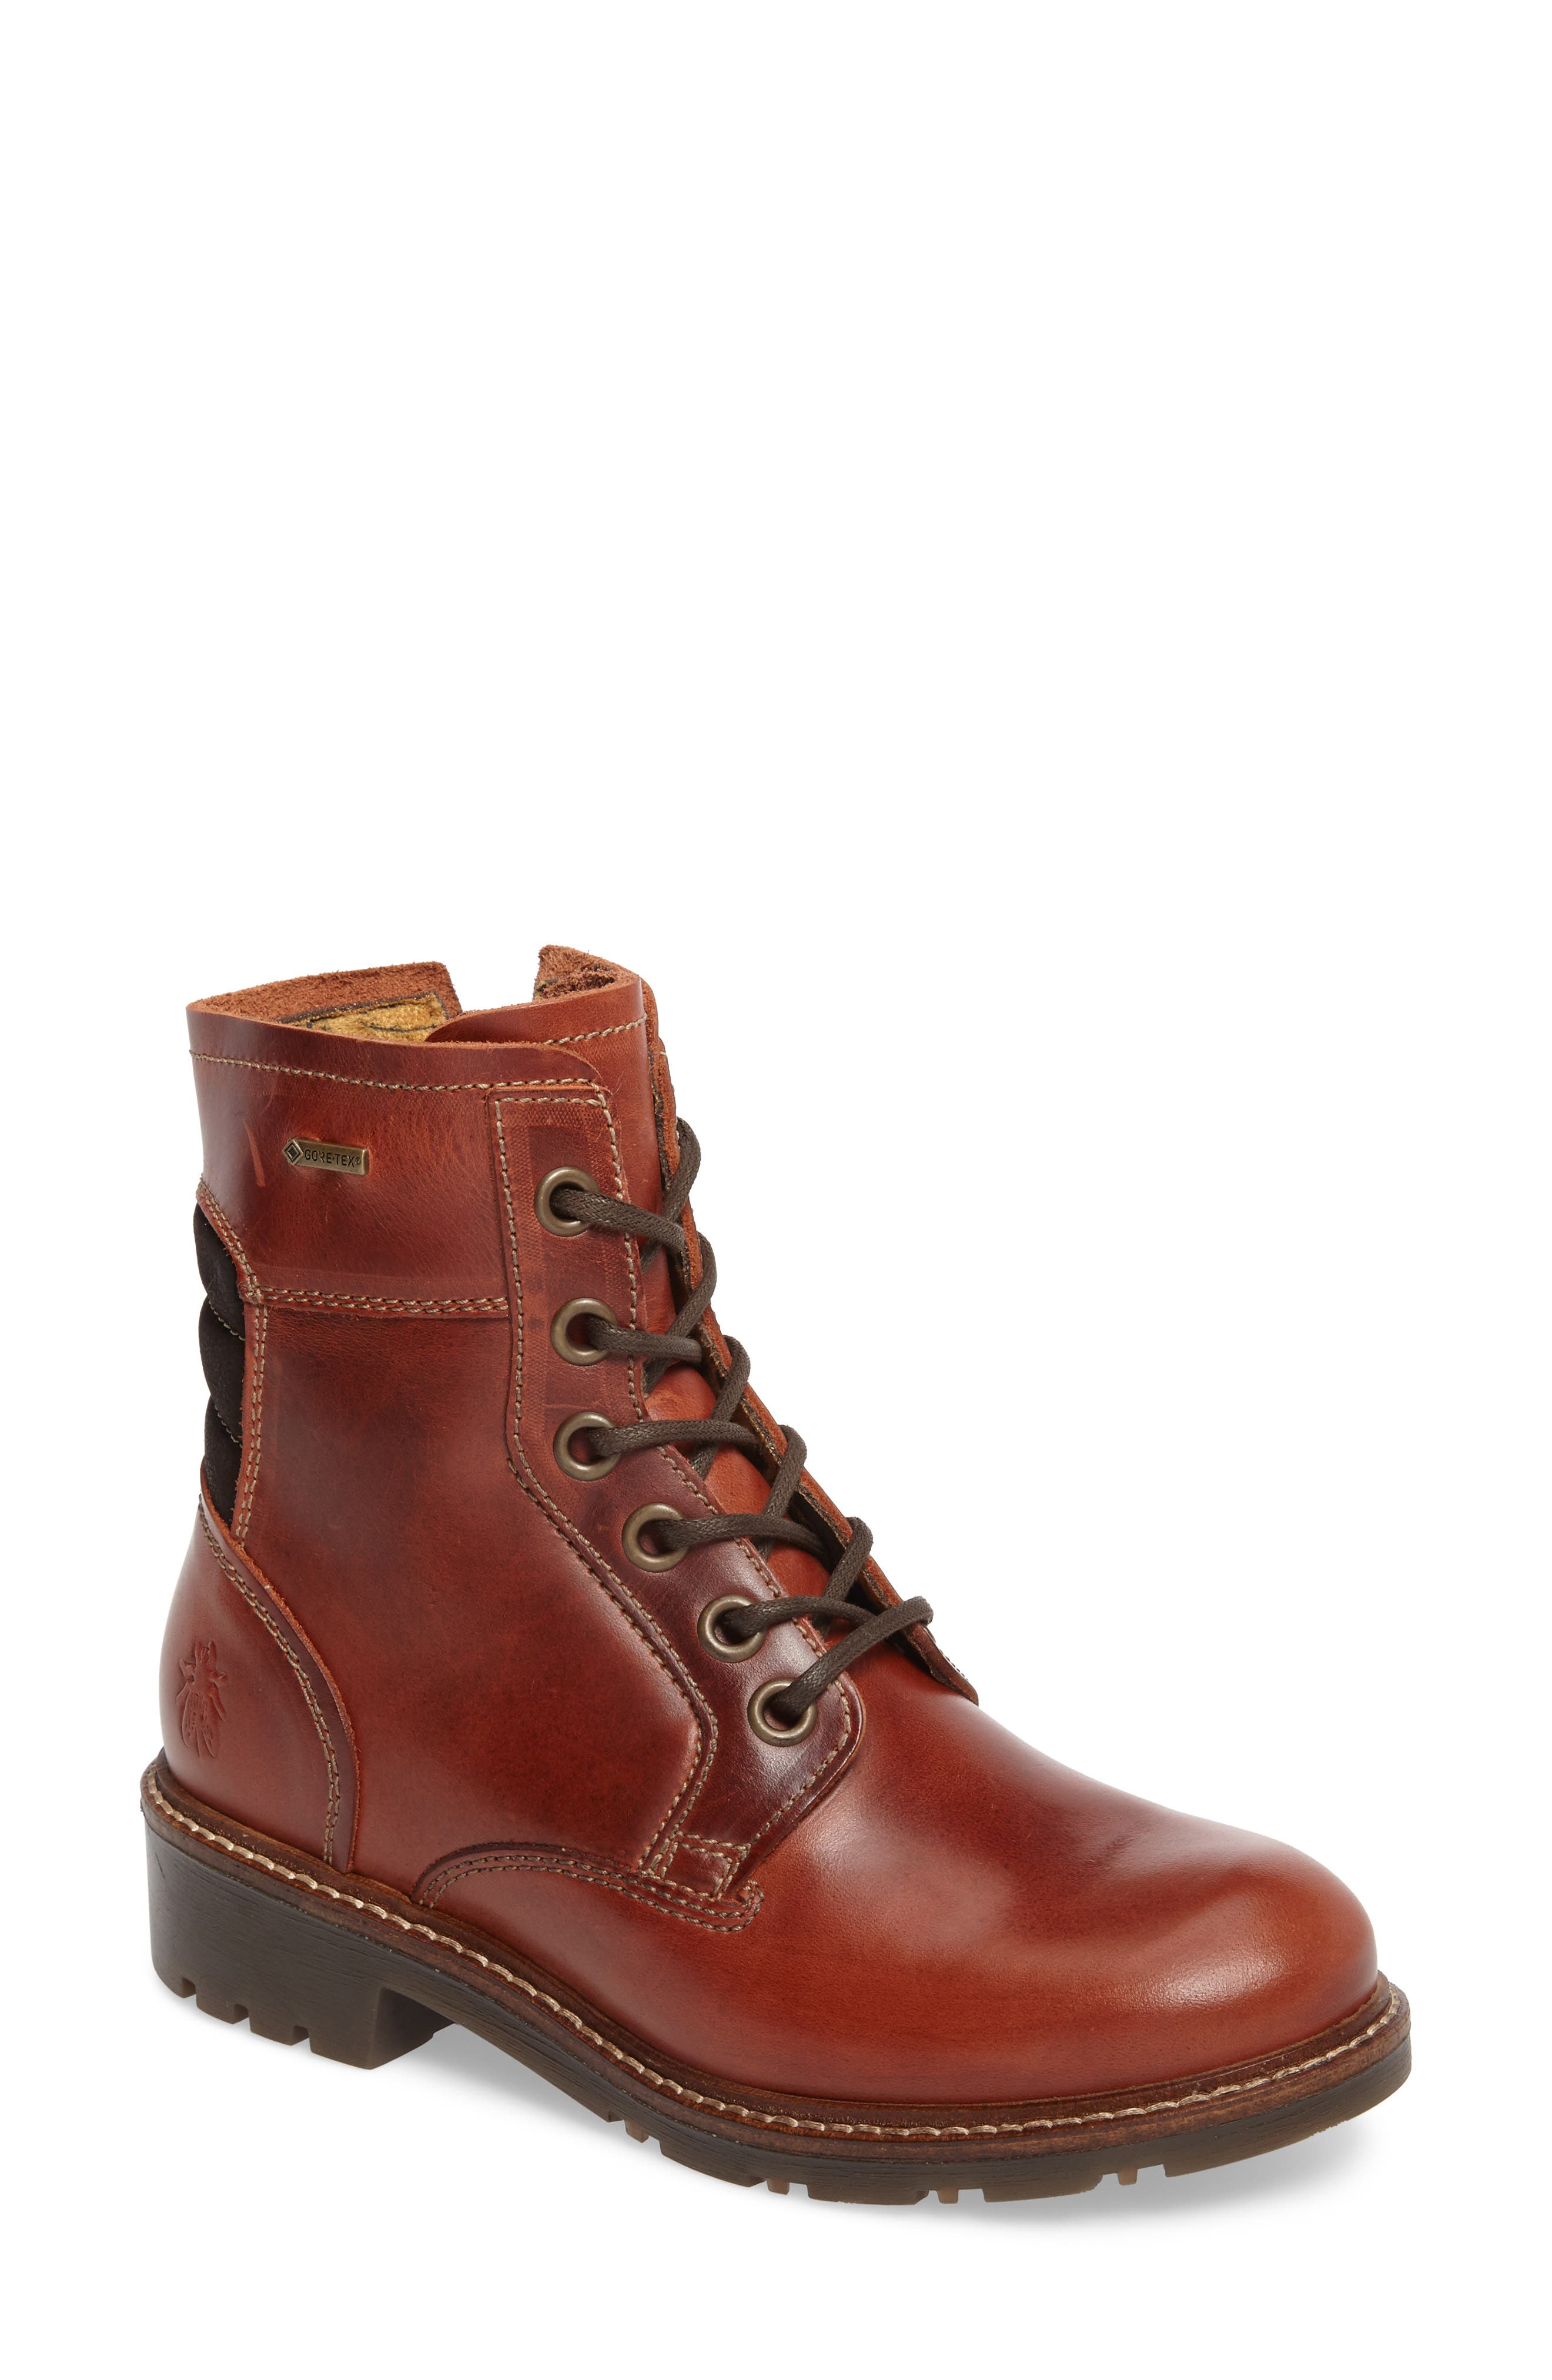 Silo Waterproof Gore-Tex<sup>®</sup> Boot,                         Main,                         color, Brick Leather